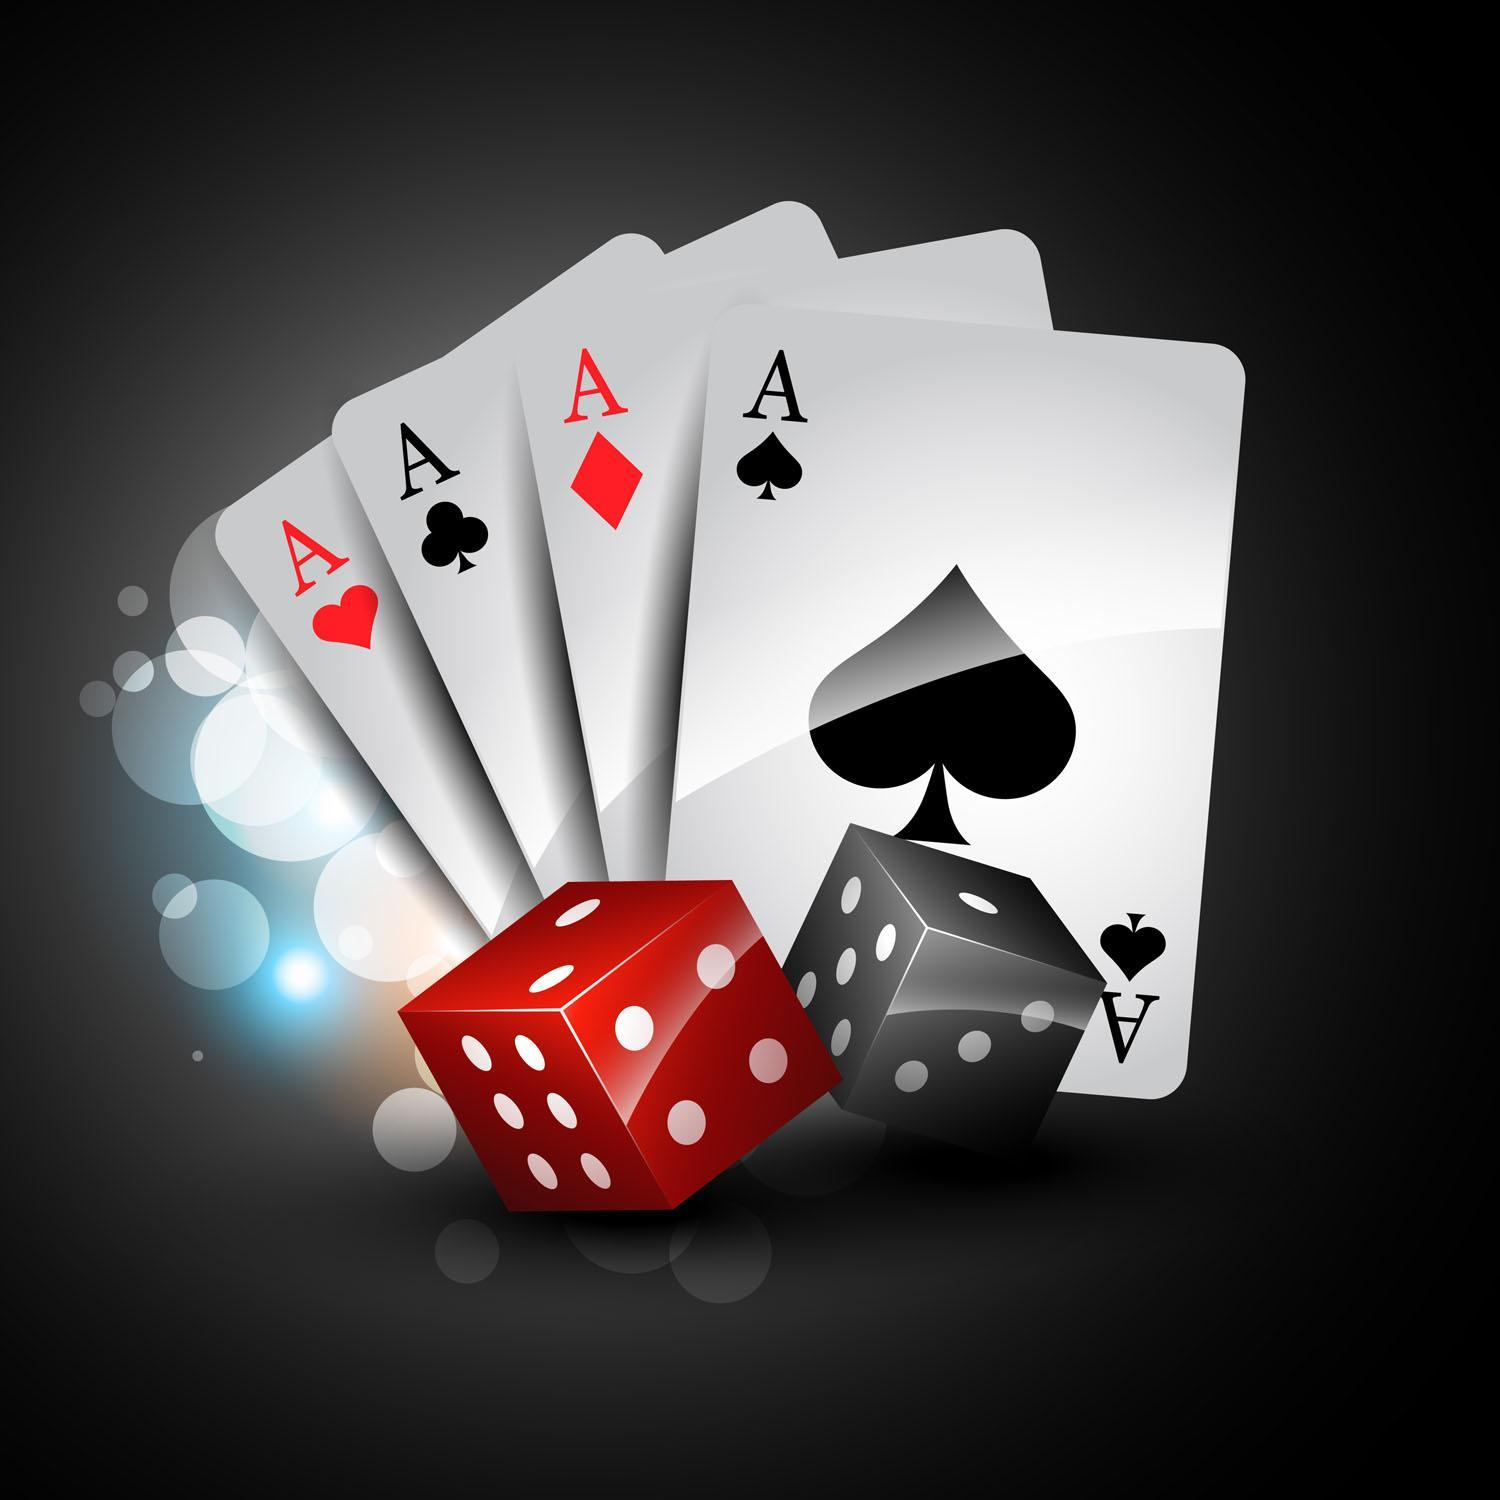 Playing Cards Wallpaper For Android Apk Download